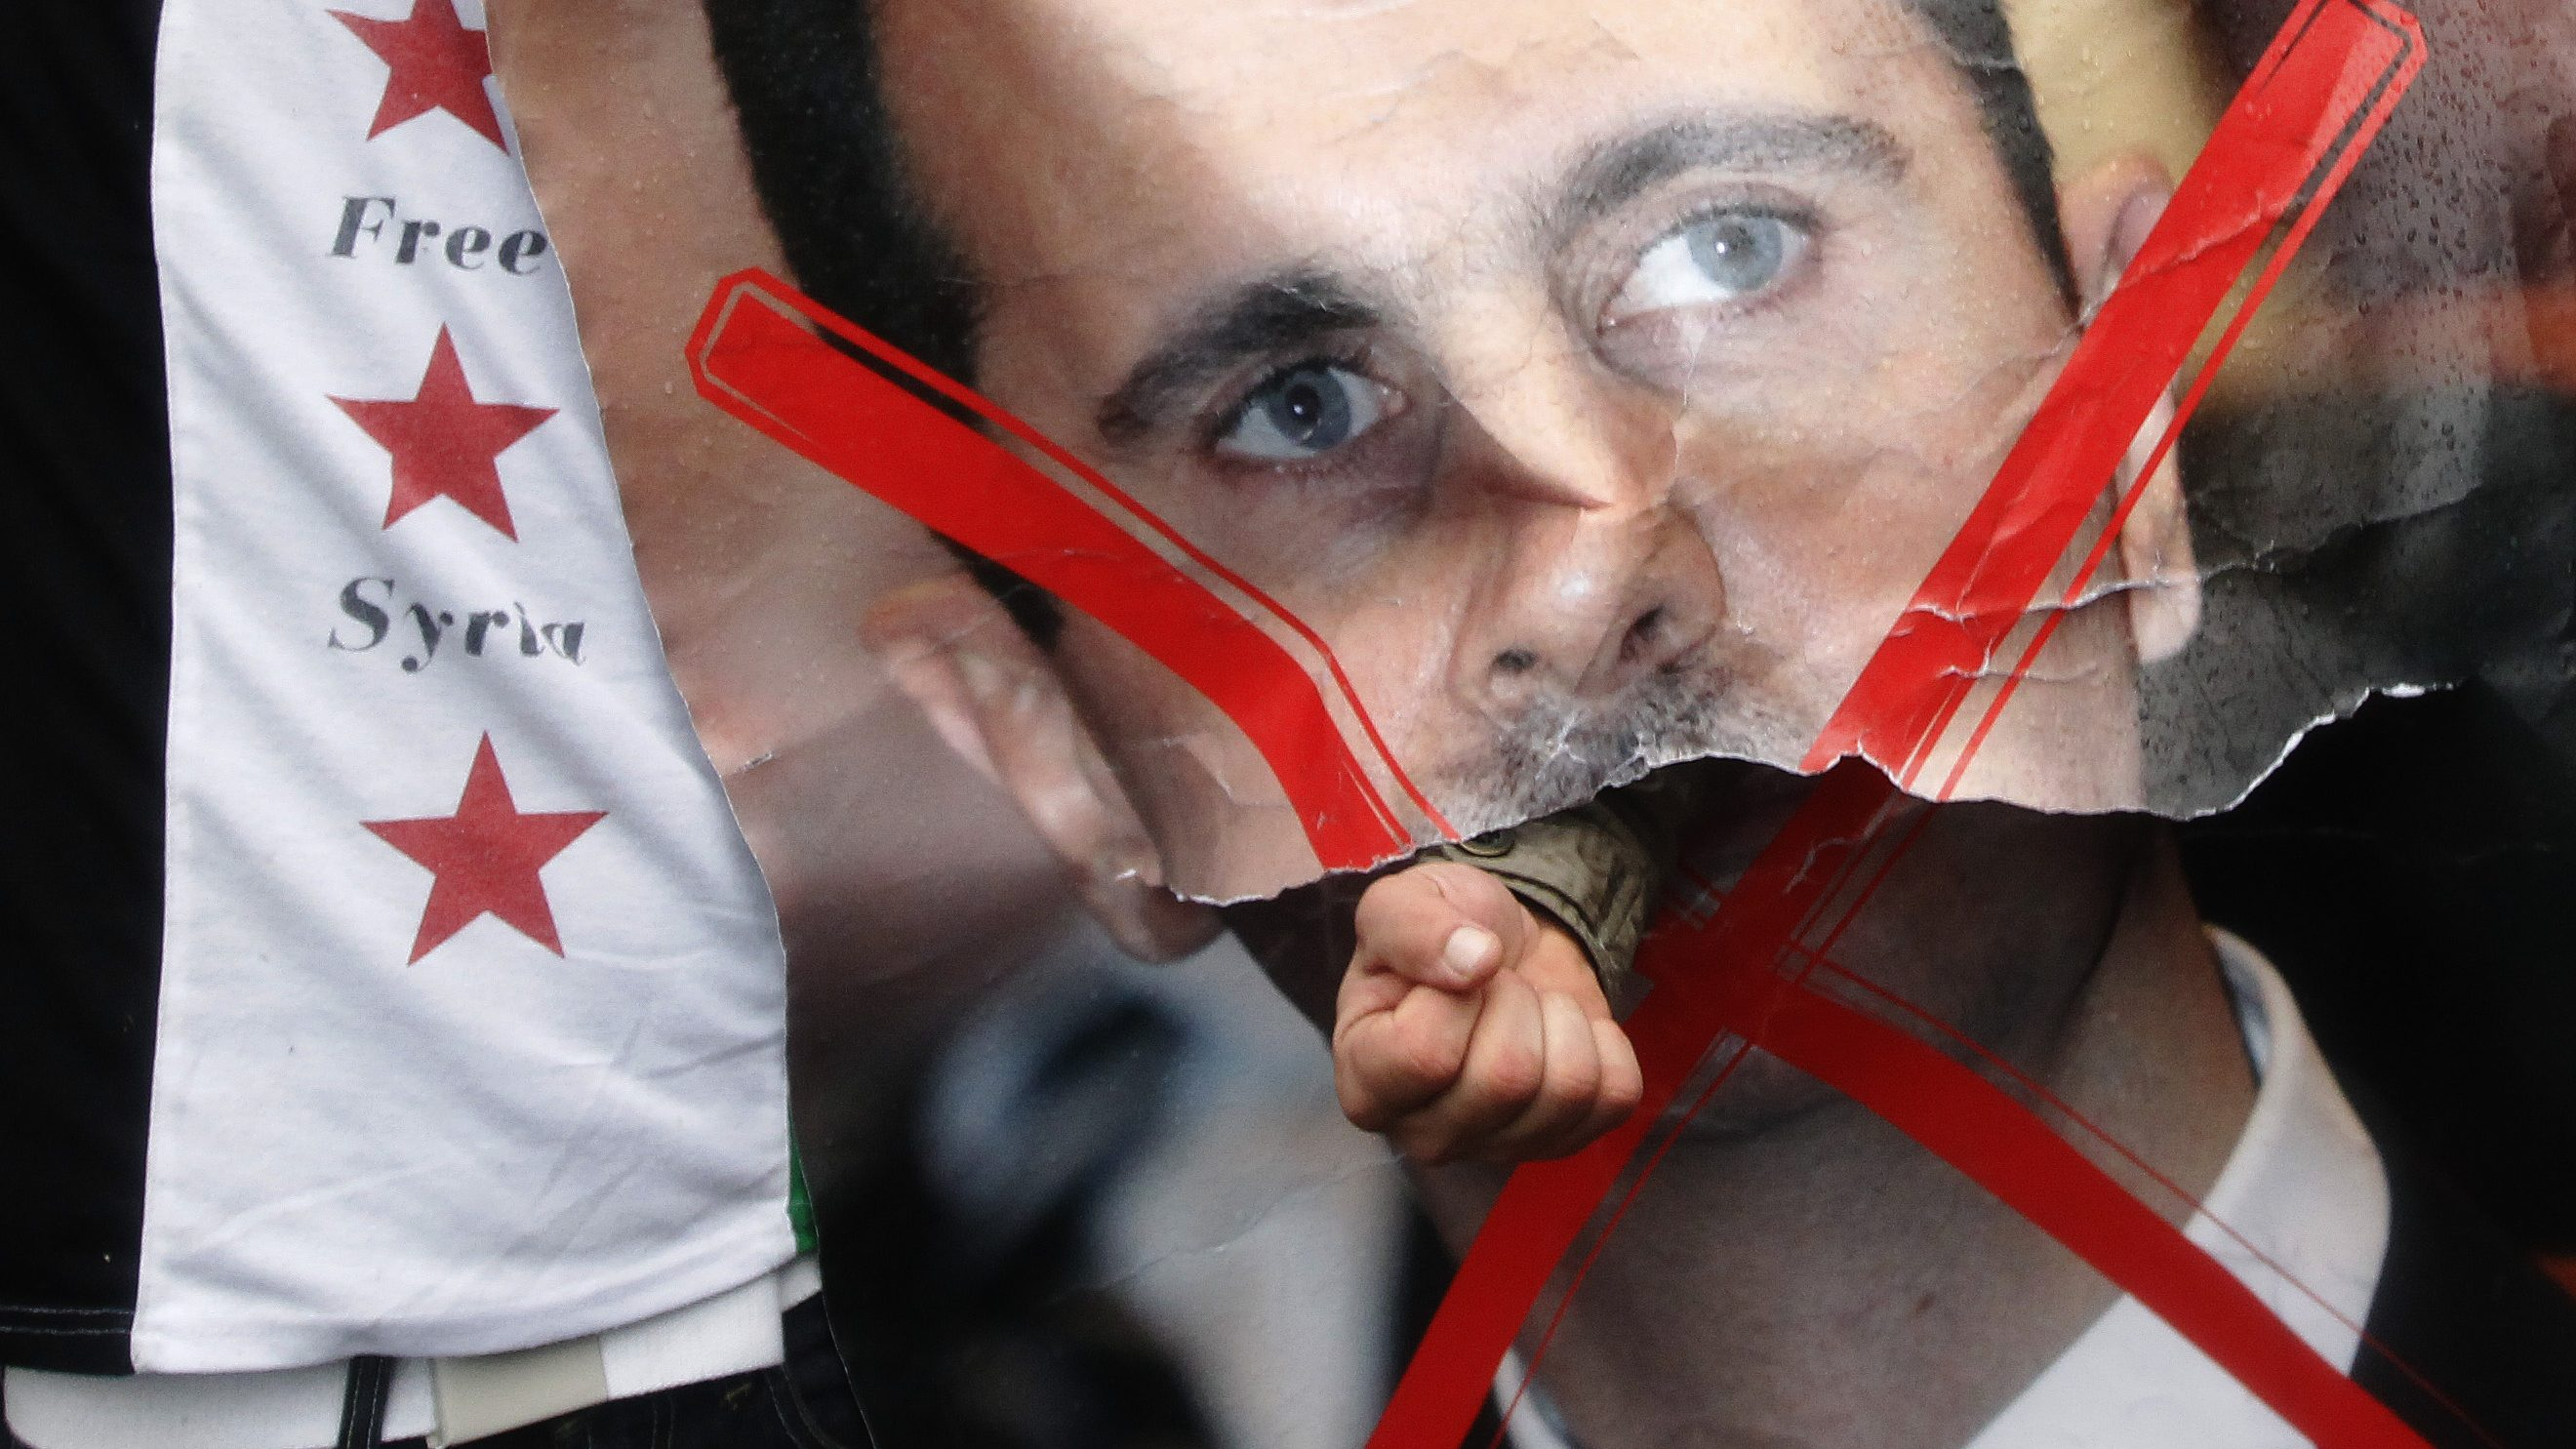 A demonstrator punches through a portrait of Syria's President Bashar al-Assad during a protest outside the Syrian Embassy in London February 18, 2012.  REUTERS/Luke MacGregor  (BRITAIN - Tags: CIVIL UNREST POLITICS) - RTR2Y289